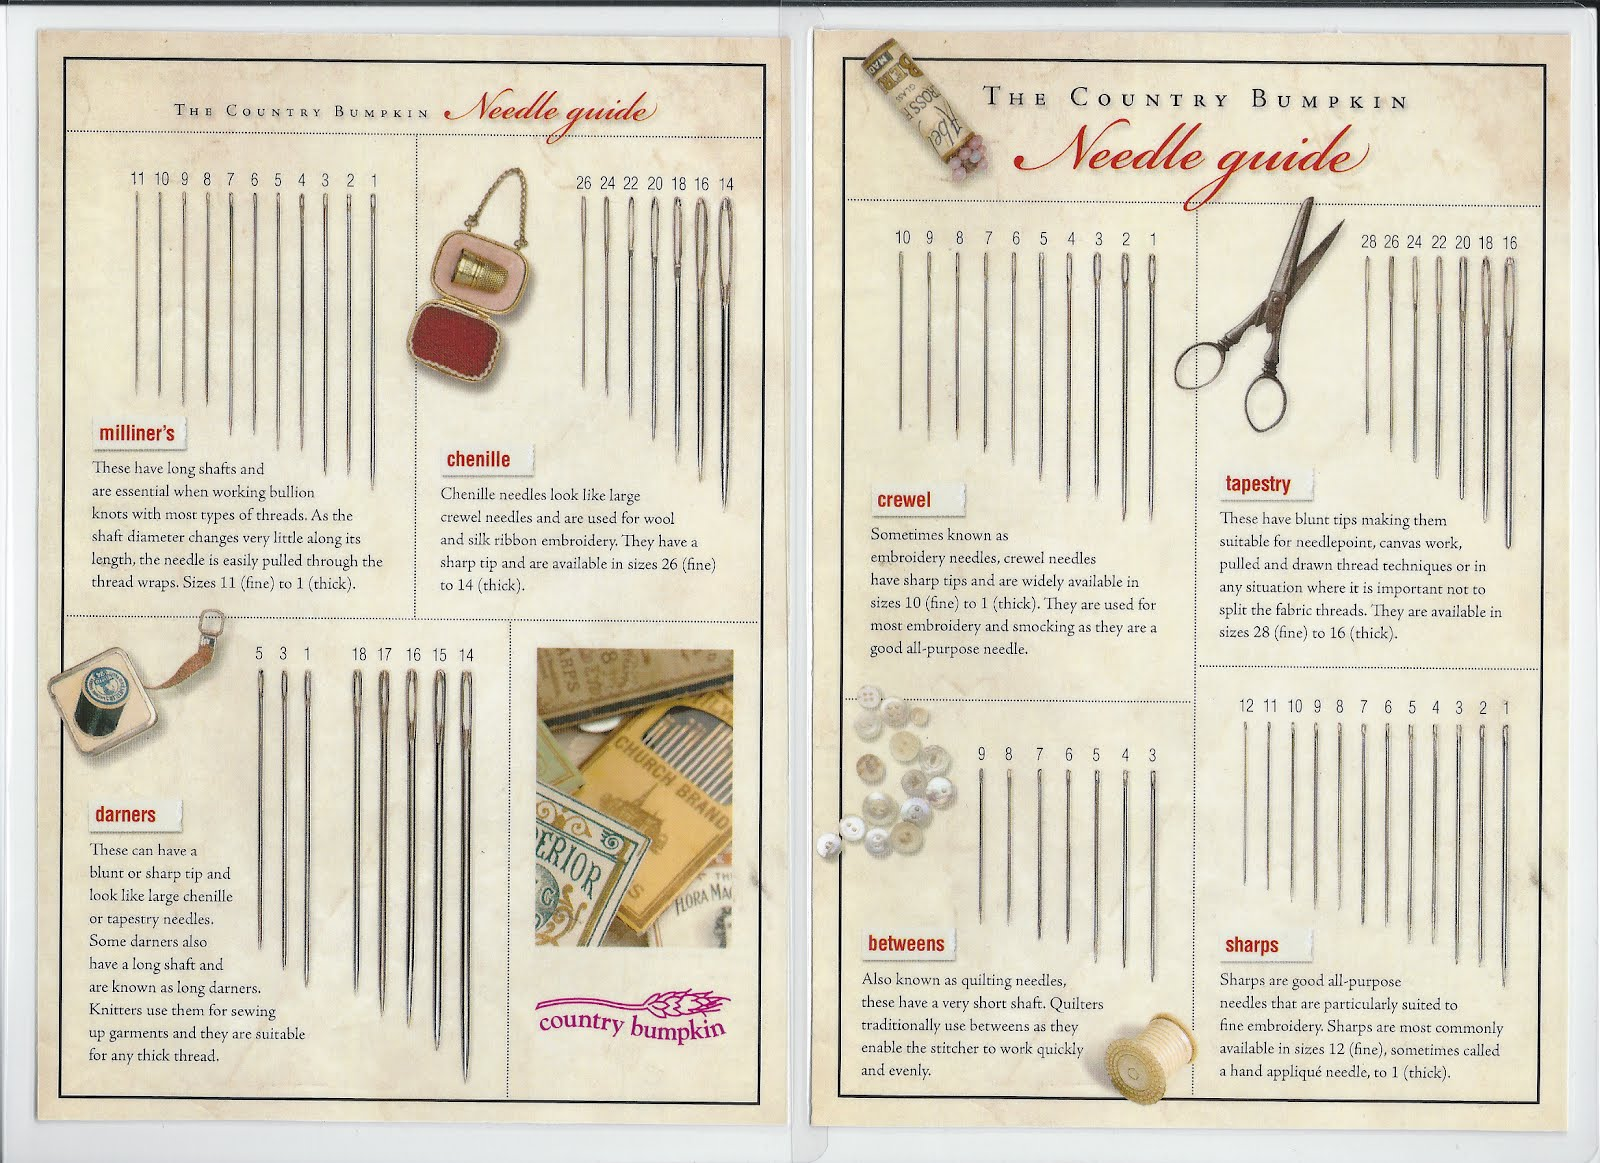 The wooly thread country bumpkin s needle guide